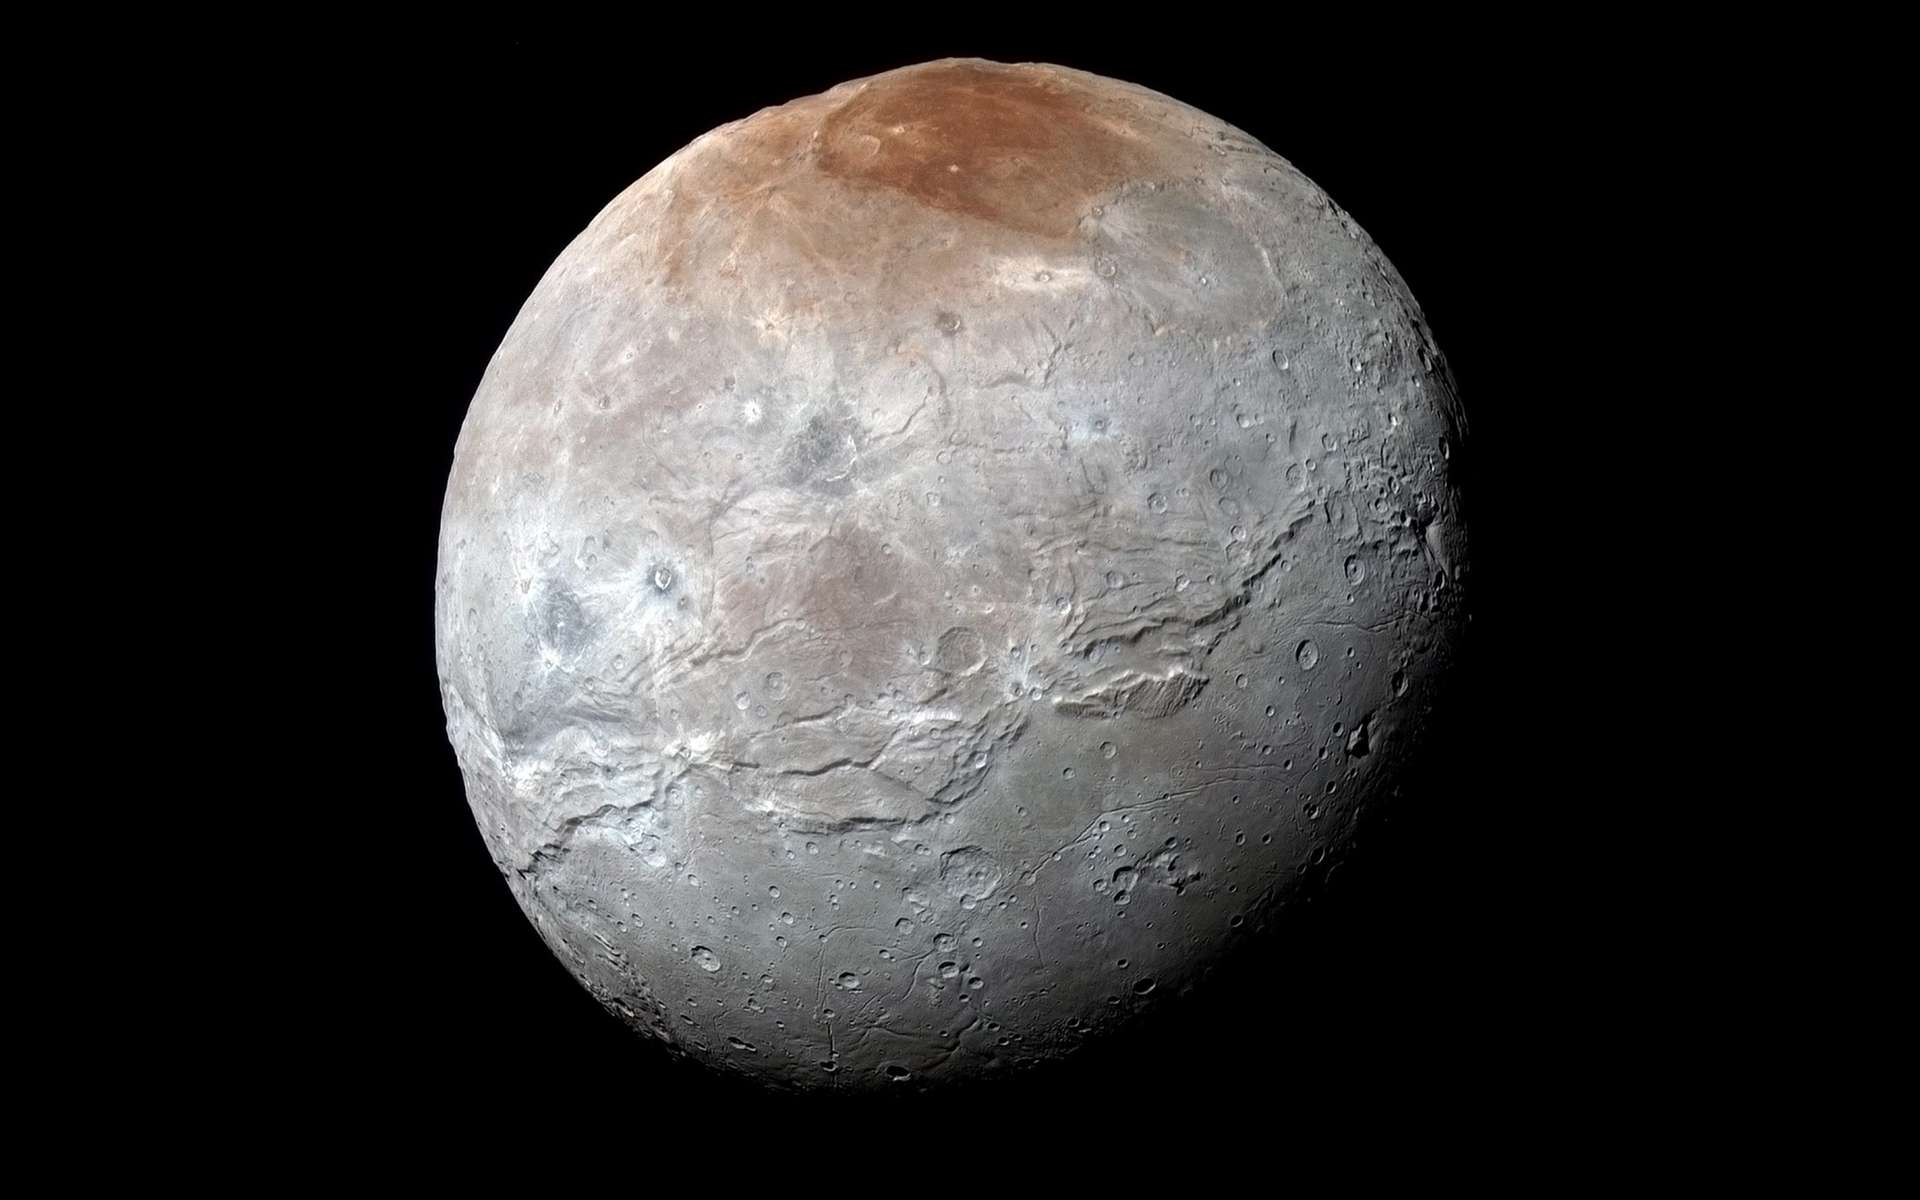 Charon, plus grosse lune de Pluton, photographiée par la sonde New Horizons en juillet 2015. Ses reliefs ont enfin des noms, empruntés au monde de la science-fiction : Kubrick Mons, Clarke Montes, Nemo Crater, entre autres. © Nasa, Johns Hopkins University Applied Physics Laboratory, Southwest Research Institute